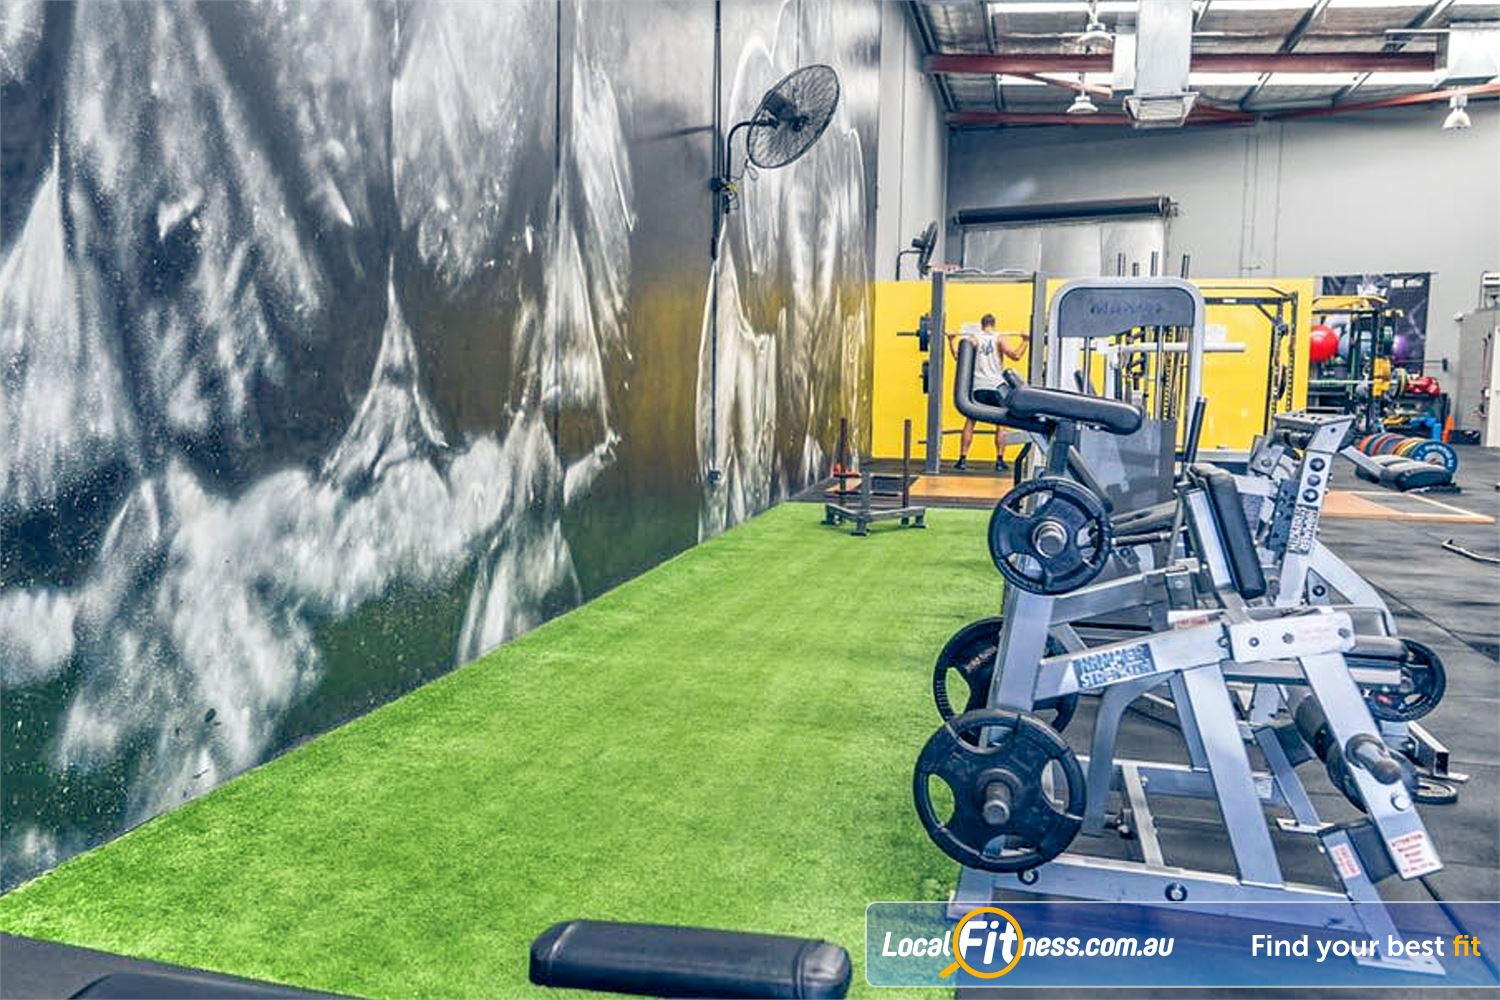 Culture 24:7 Wanneroo Train like an athlete at Culture 24/7 Wanneroo gym.